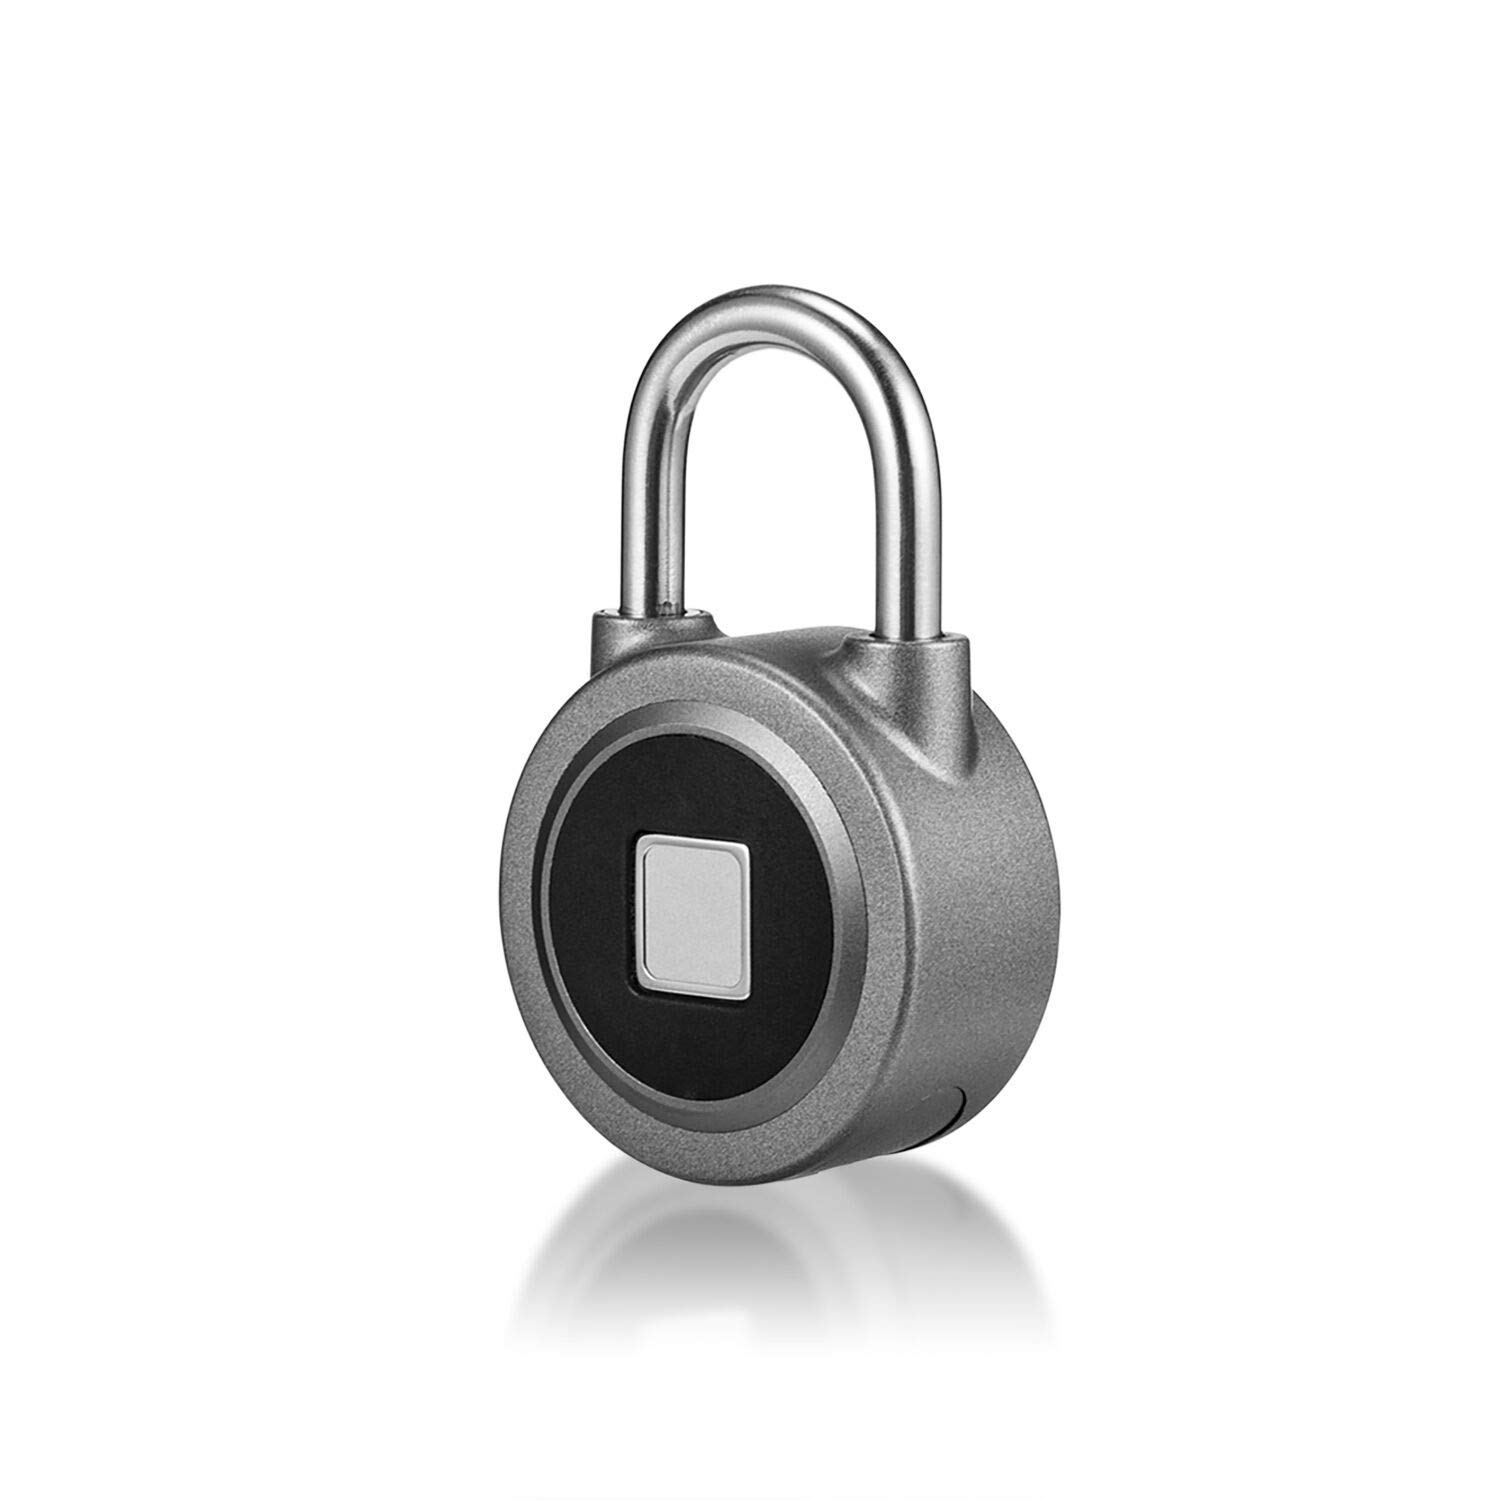 Fingerprint Lock, Bluetooth Connection Metal Waterproof, Suitable for House Door, Backpack, Suitcase, Bike, Gym, Office, APP is Suitable for Android/iOS